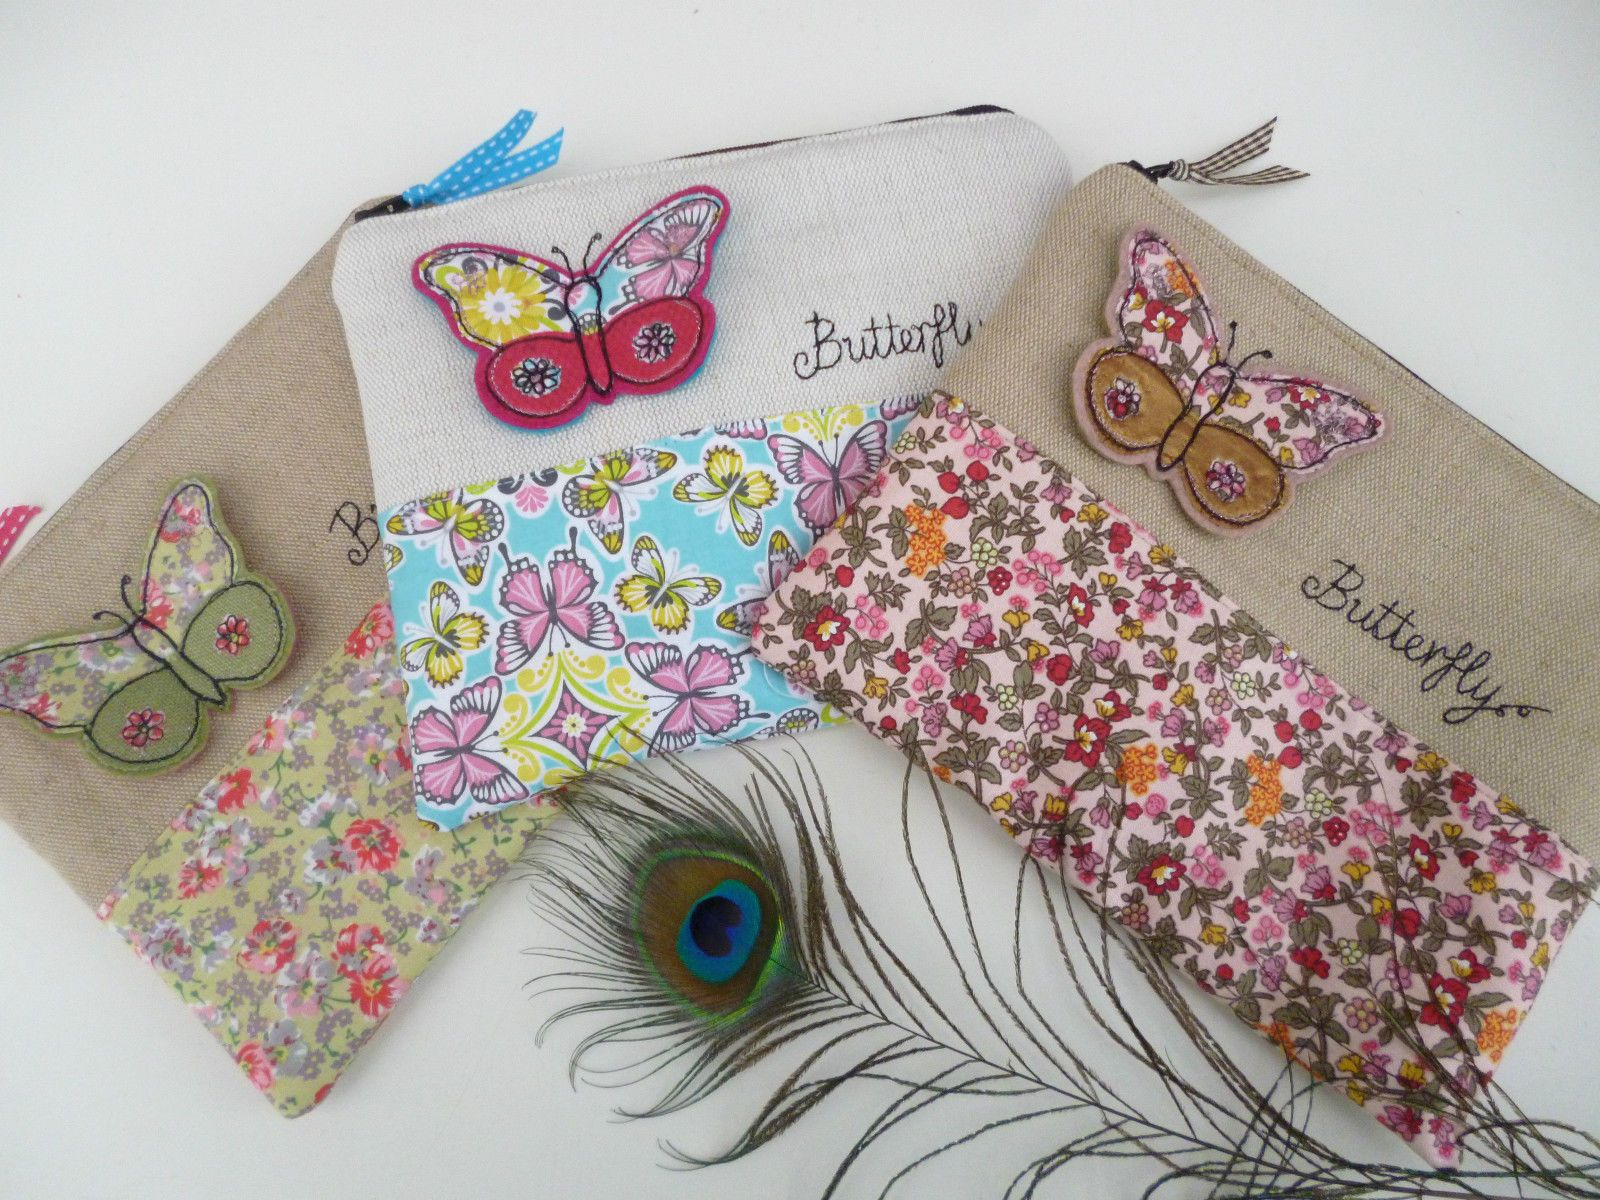 Handmade Makeup Cosmetic Bag, 3D embroidered butterfly design, Pink ditsy floral | eBay